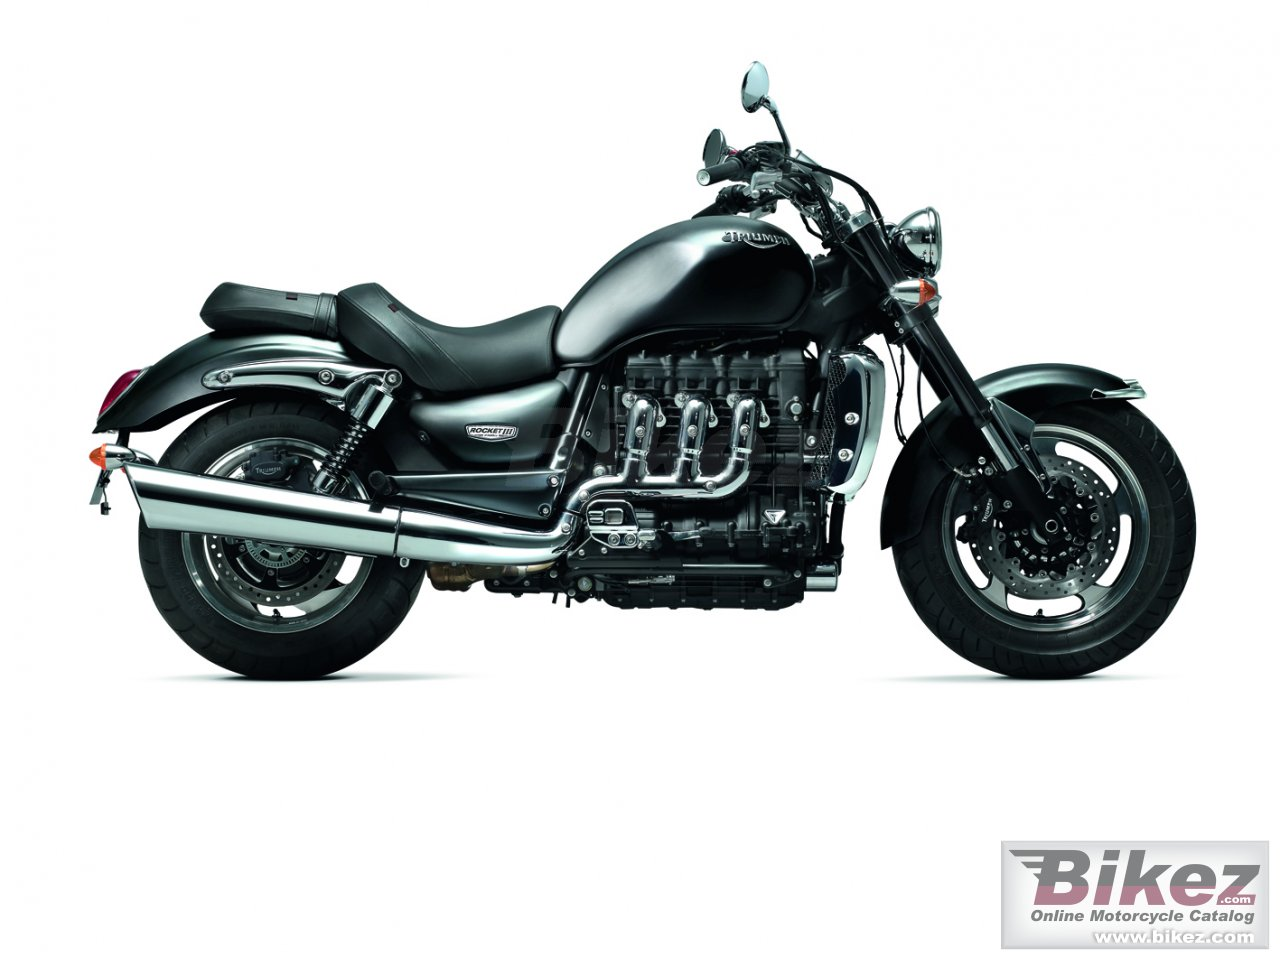 Big Triumph rocket iii roadster picture and wallpaper from Bikez.com